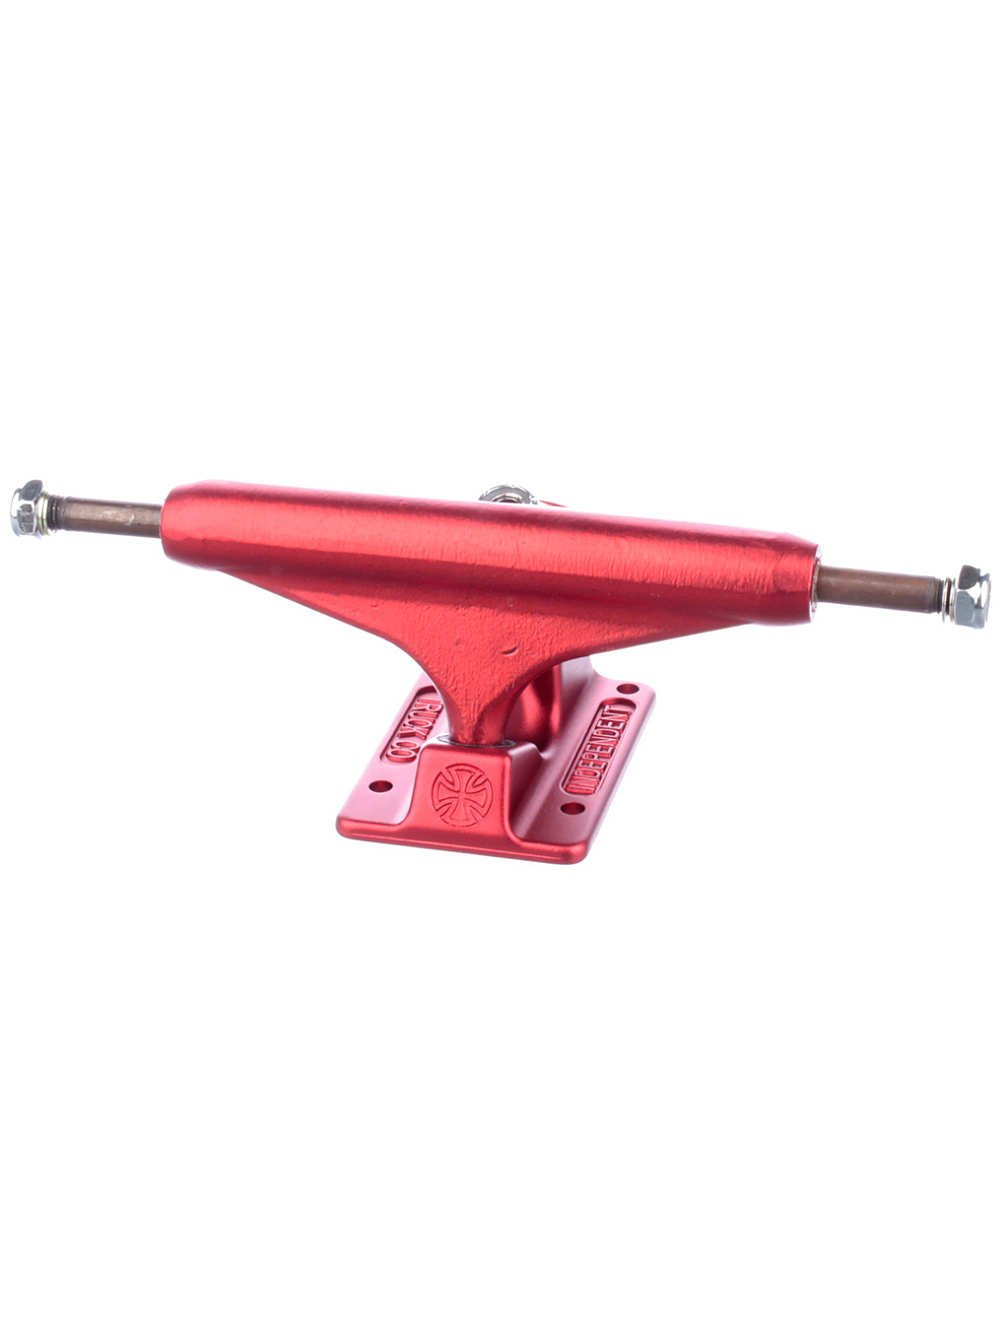 Independent 139mm Ano Red Forged Hollow Truck Skateboard Trucks (Set of 2) by Independent   B01KH4964E